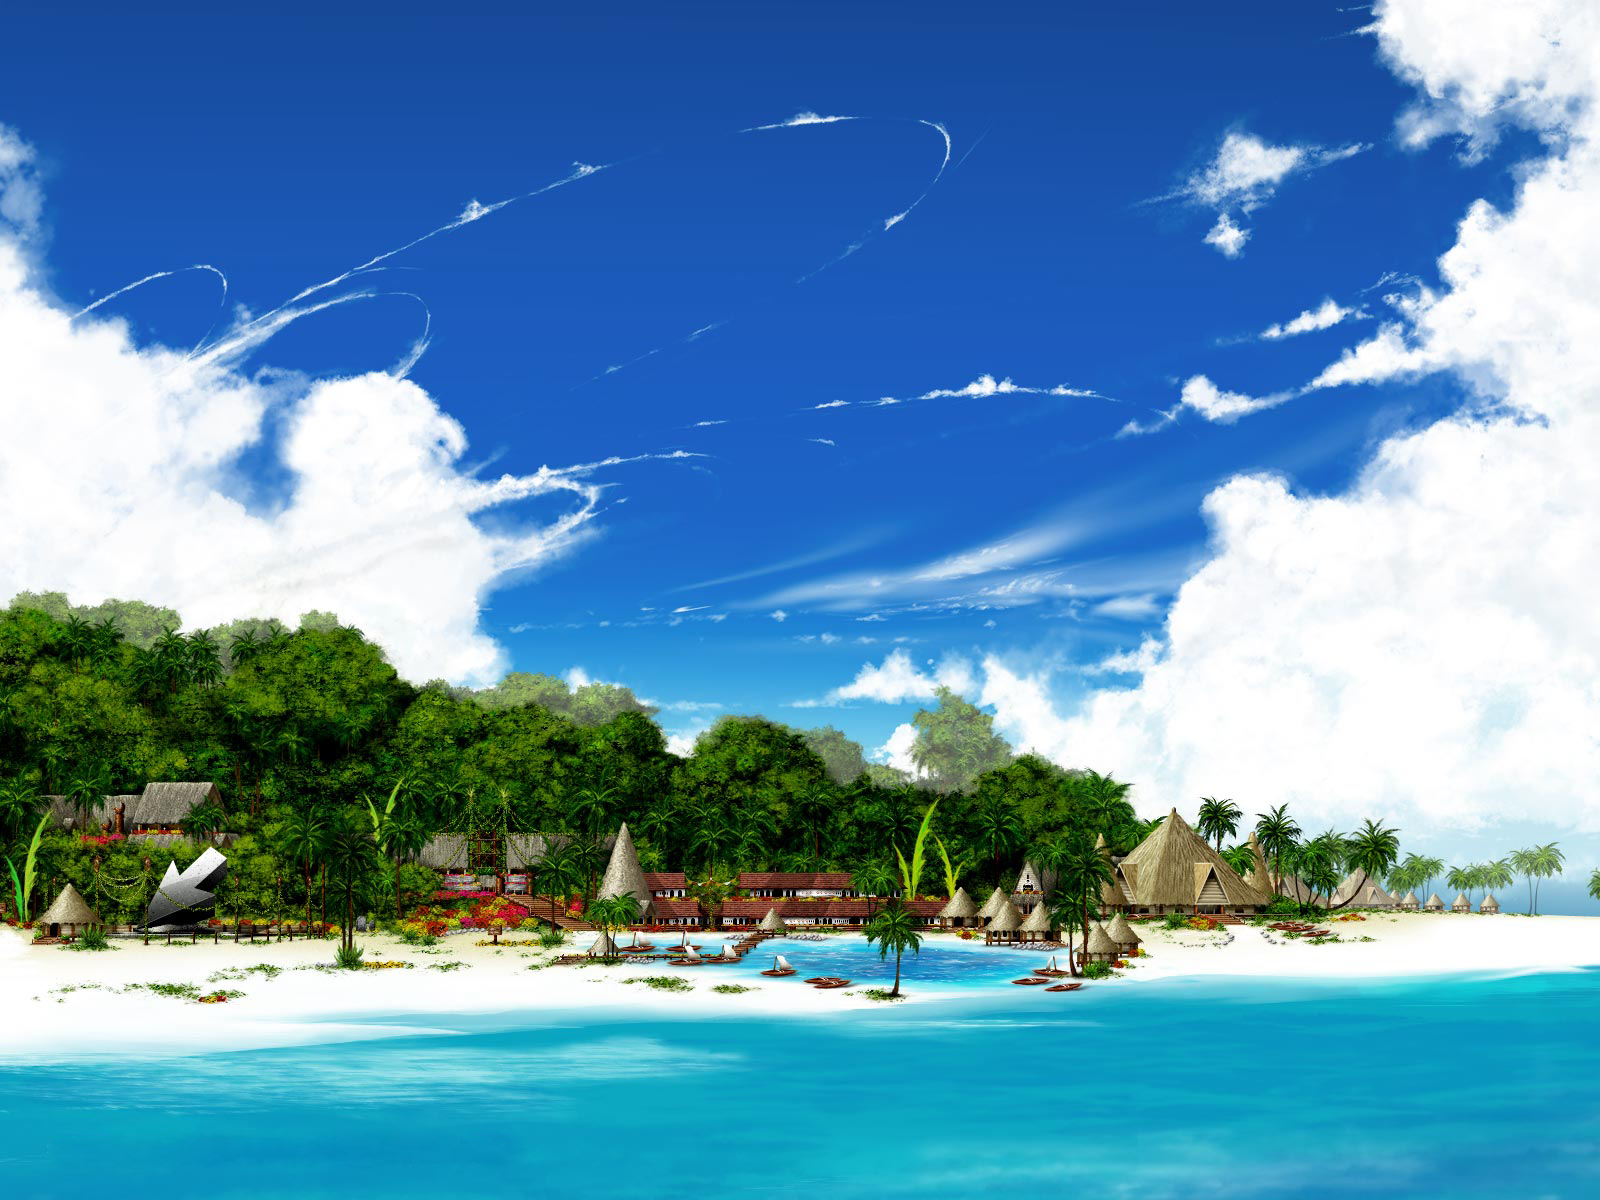 wallpaper hot summer wallpaper summer beach wallpaper summer wallpaper 1600x1200